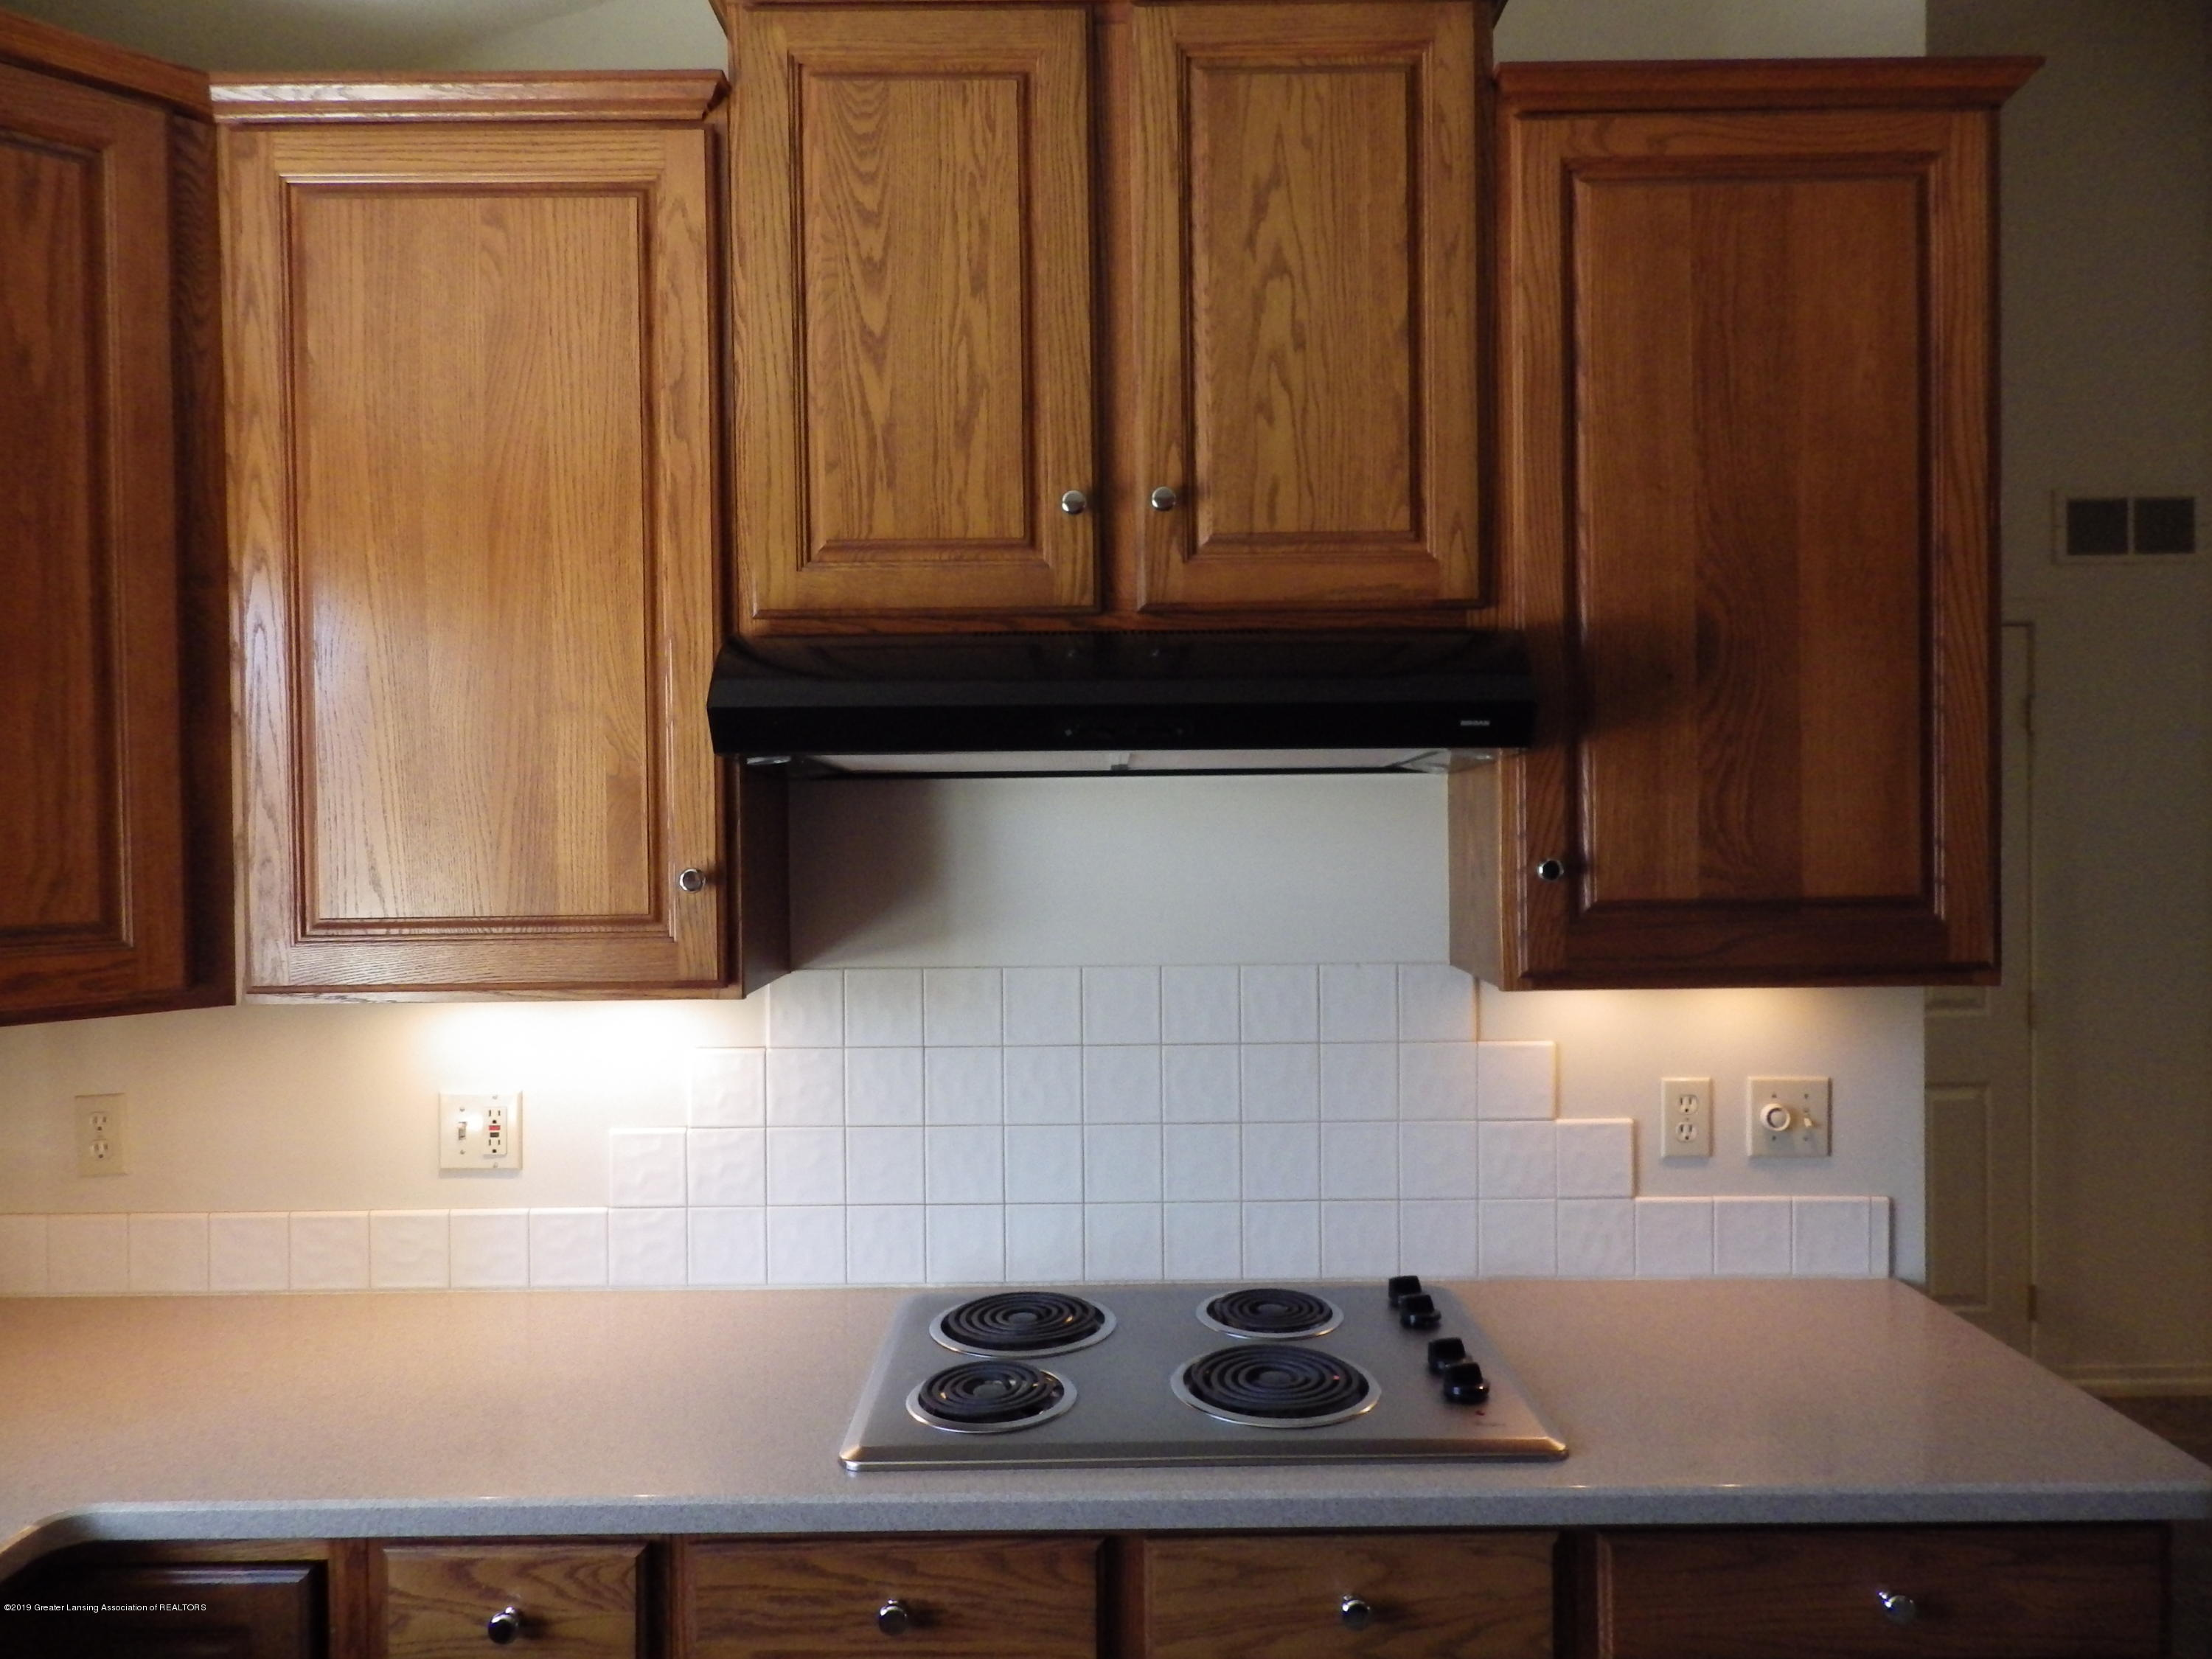 1007 Carlisle Cir - Kitchen 4 - 9